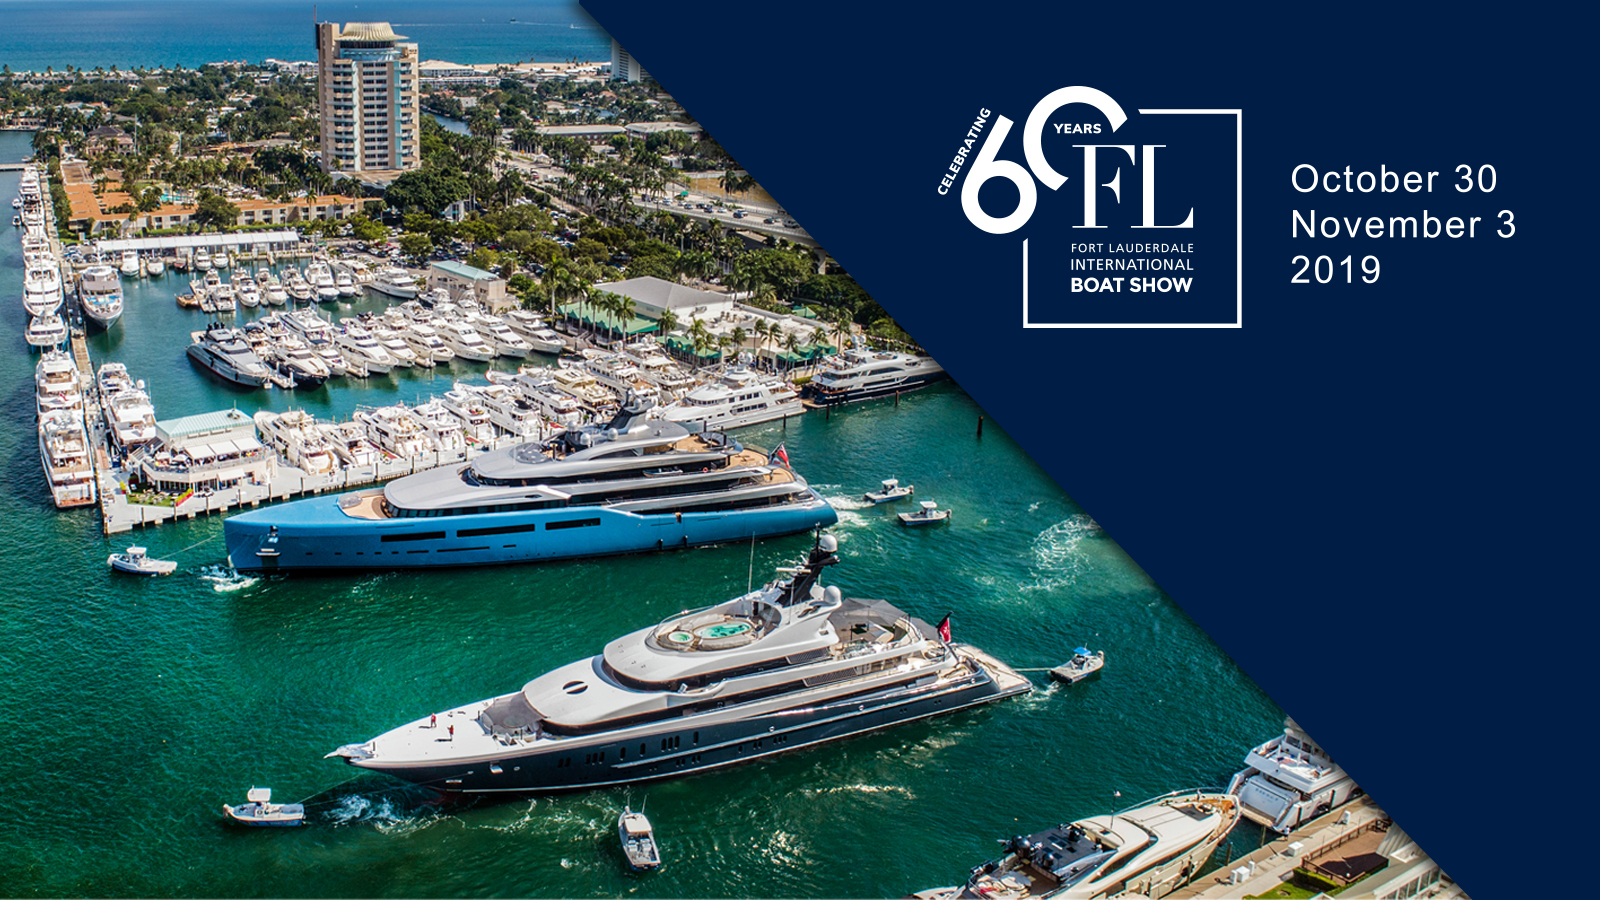 Fort Lauderdale International Boat Show (Oct 30 - Nov 3)